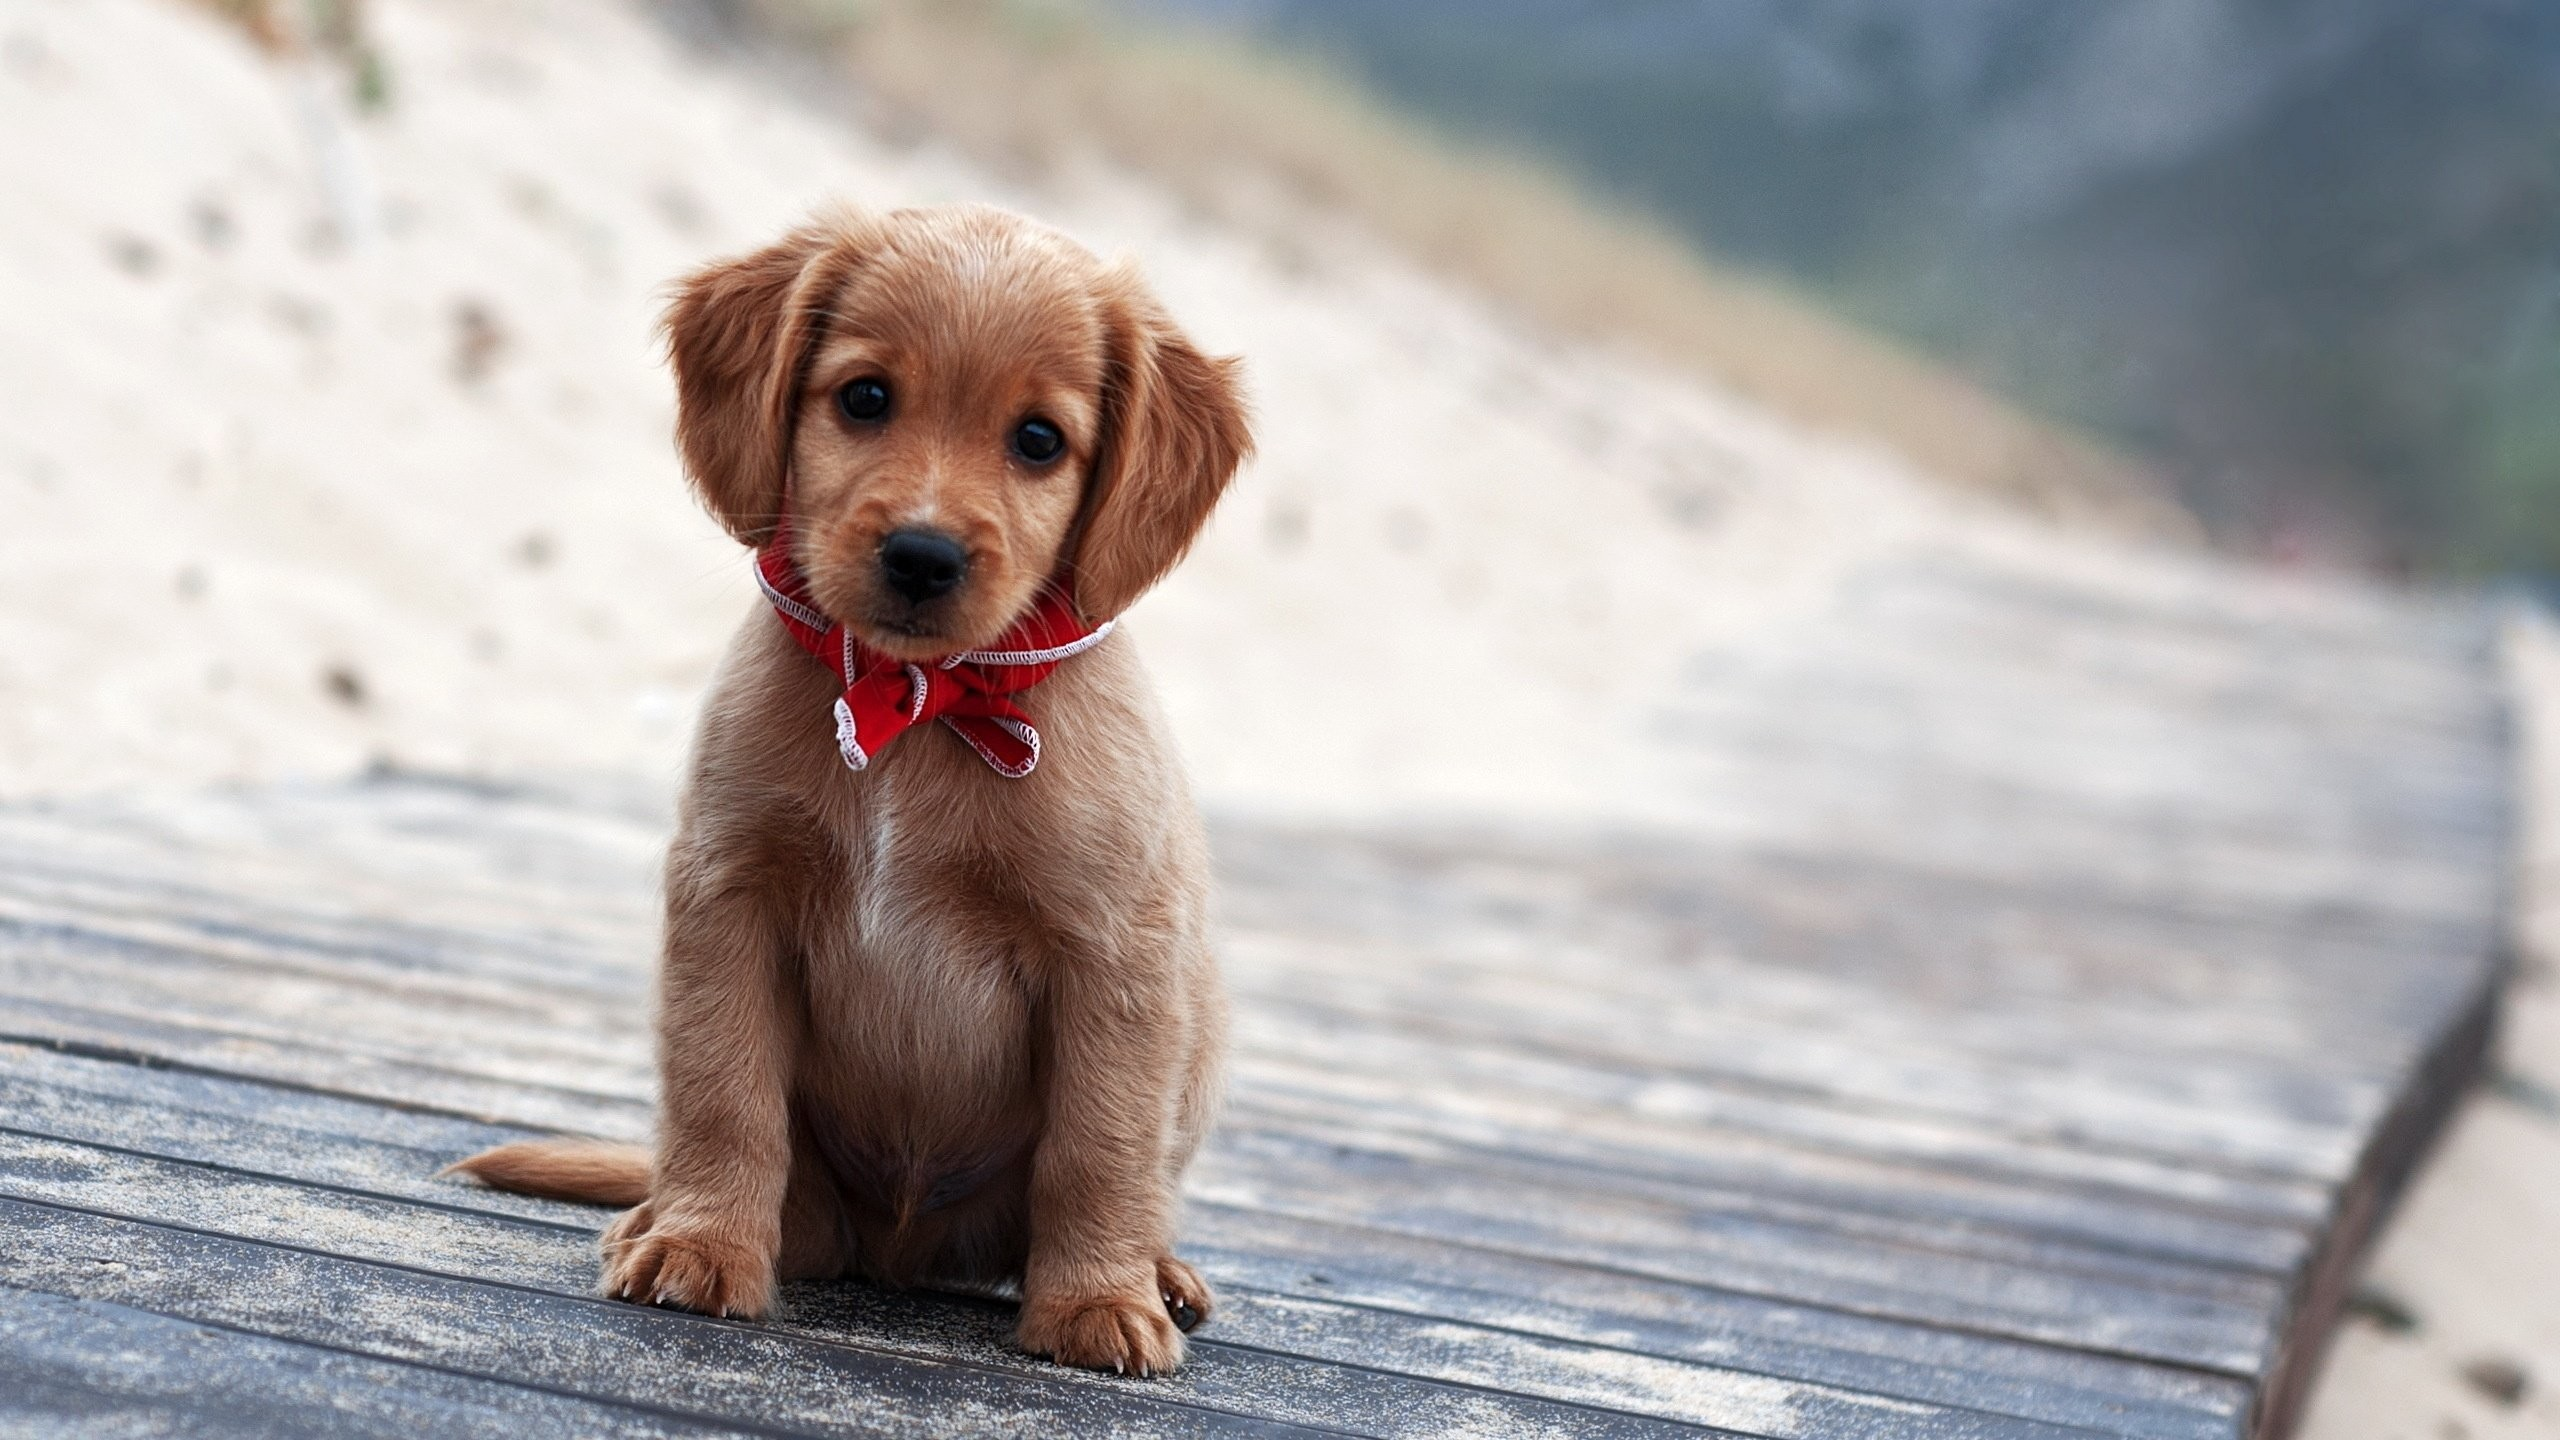 Free Download Cute Puppy Image.